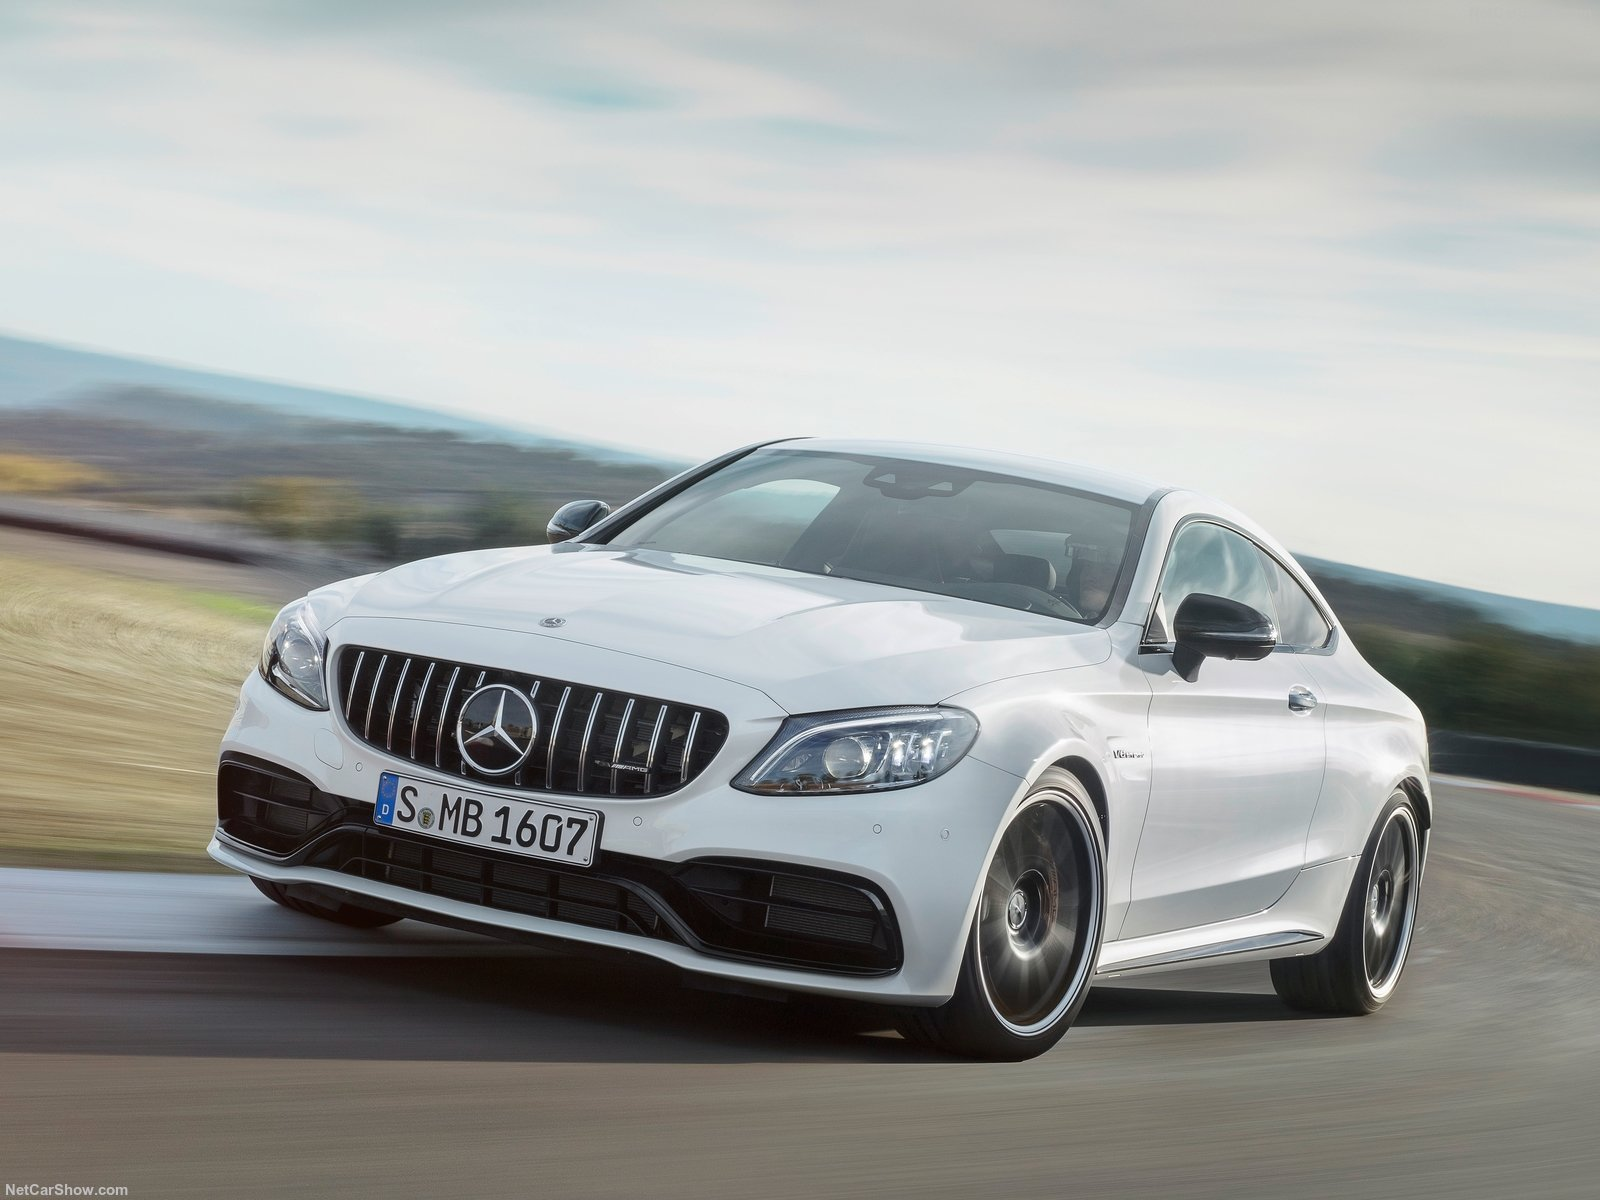 Mercedes-Benz C63 S AMG Coupe photo 187372